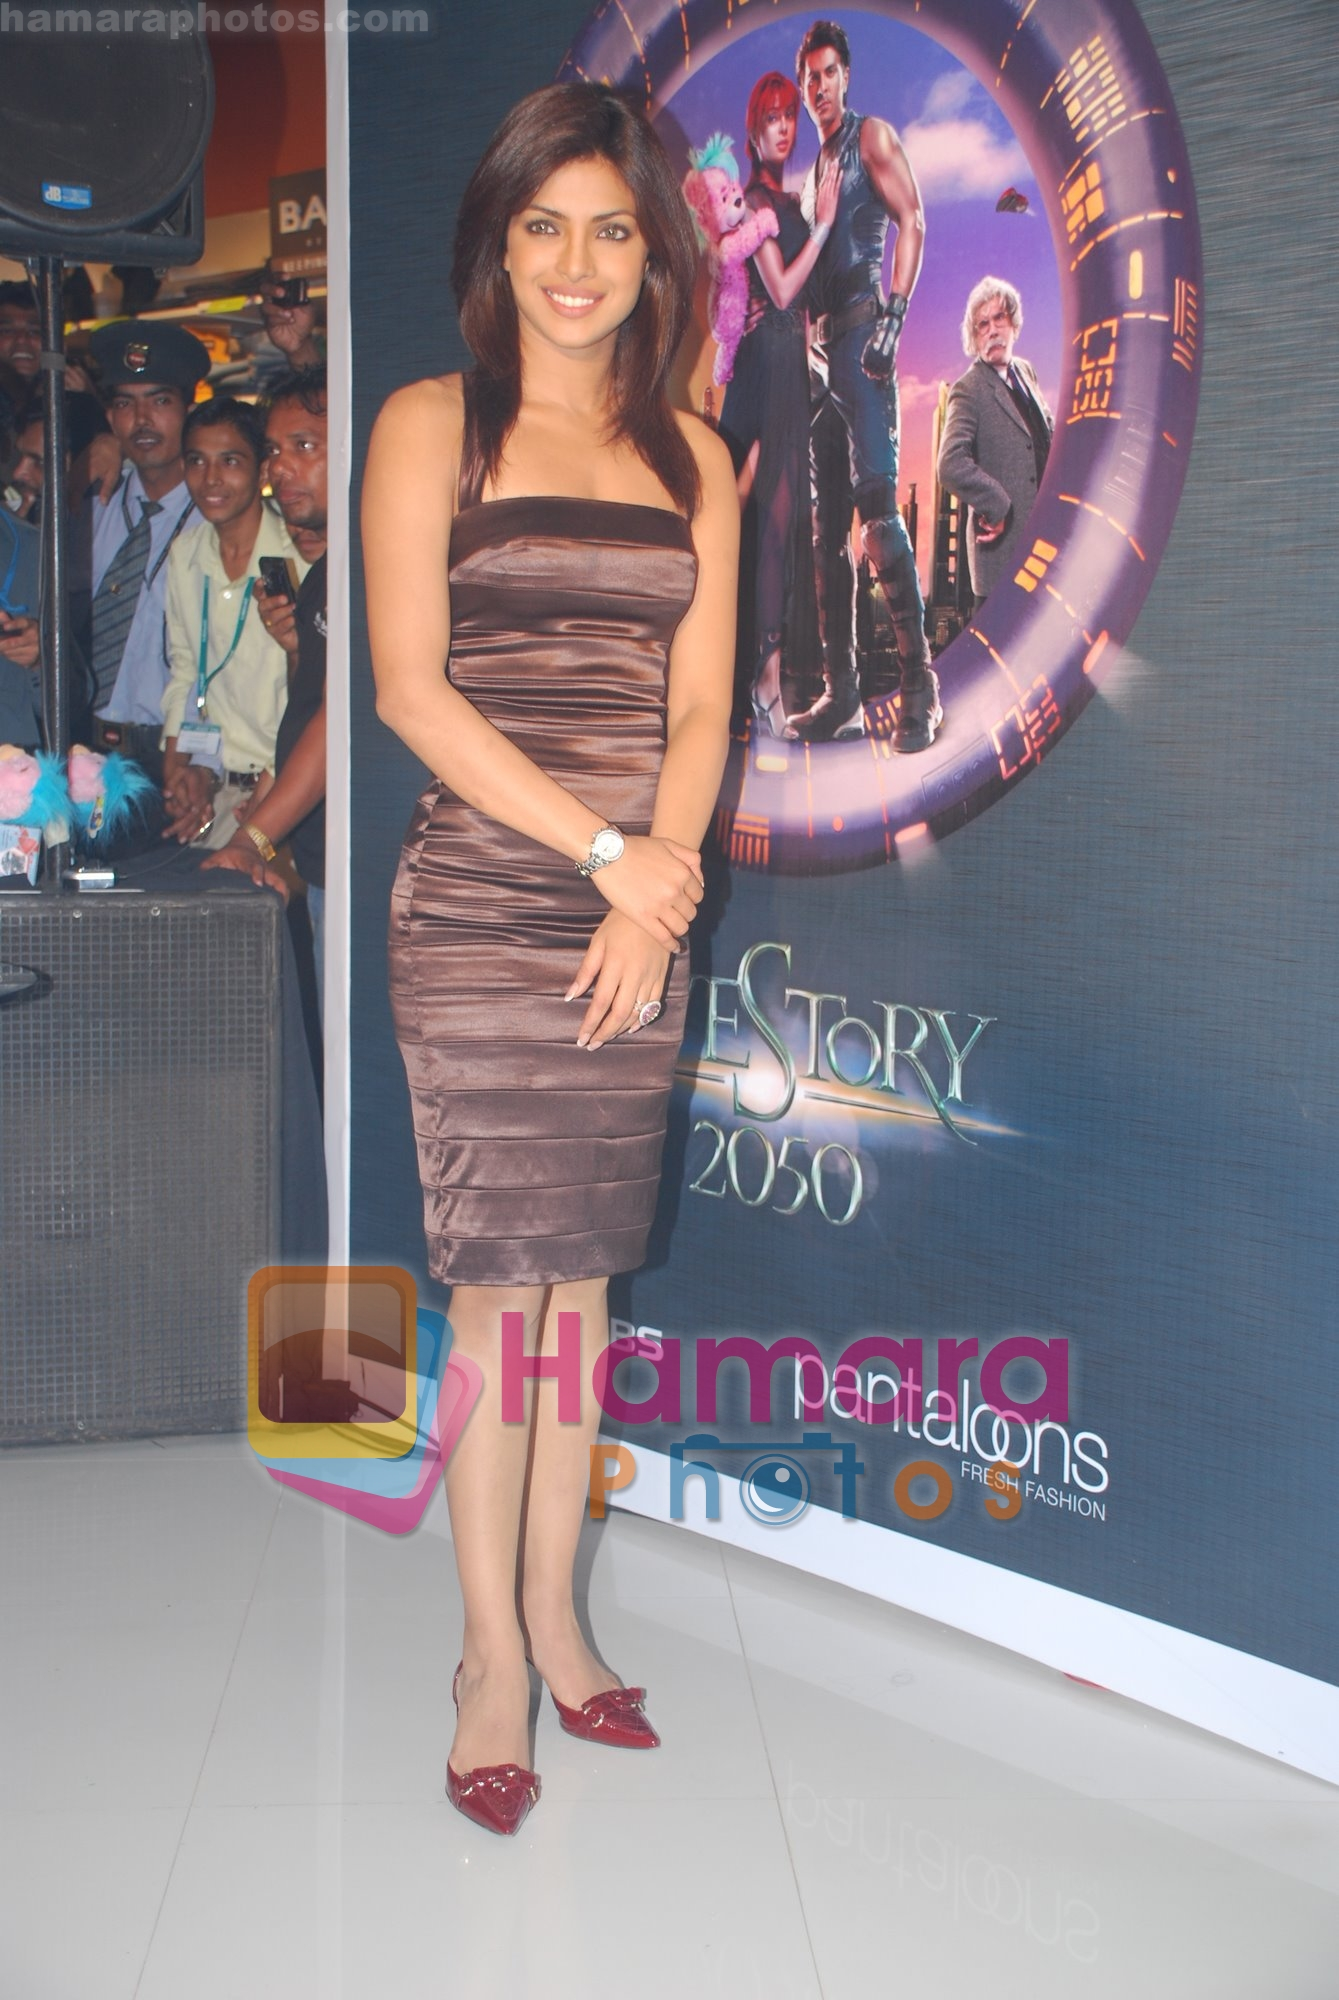 Priyanka Chopra at the Pantaloons Promotional Event for Love Story 2050 on June 28th 2008